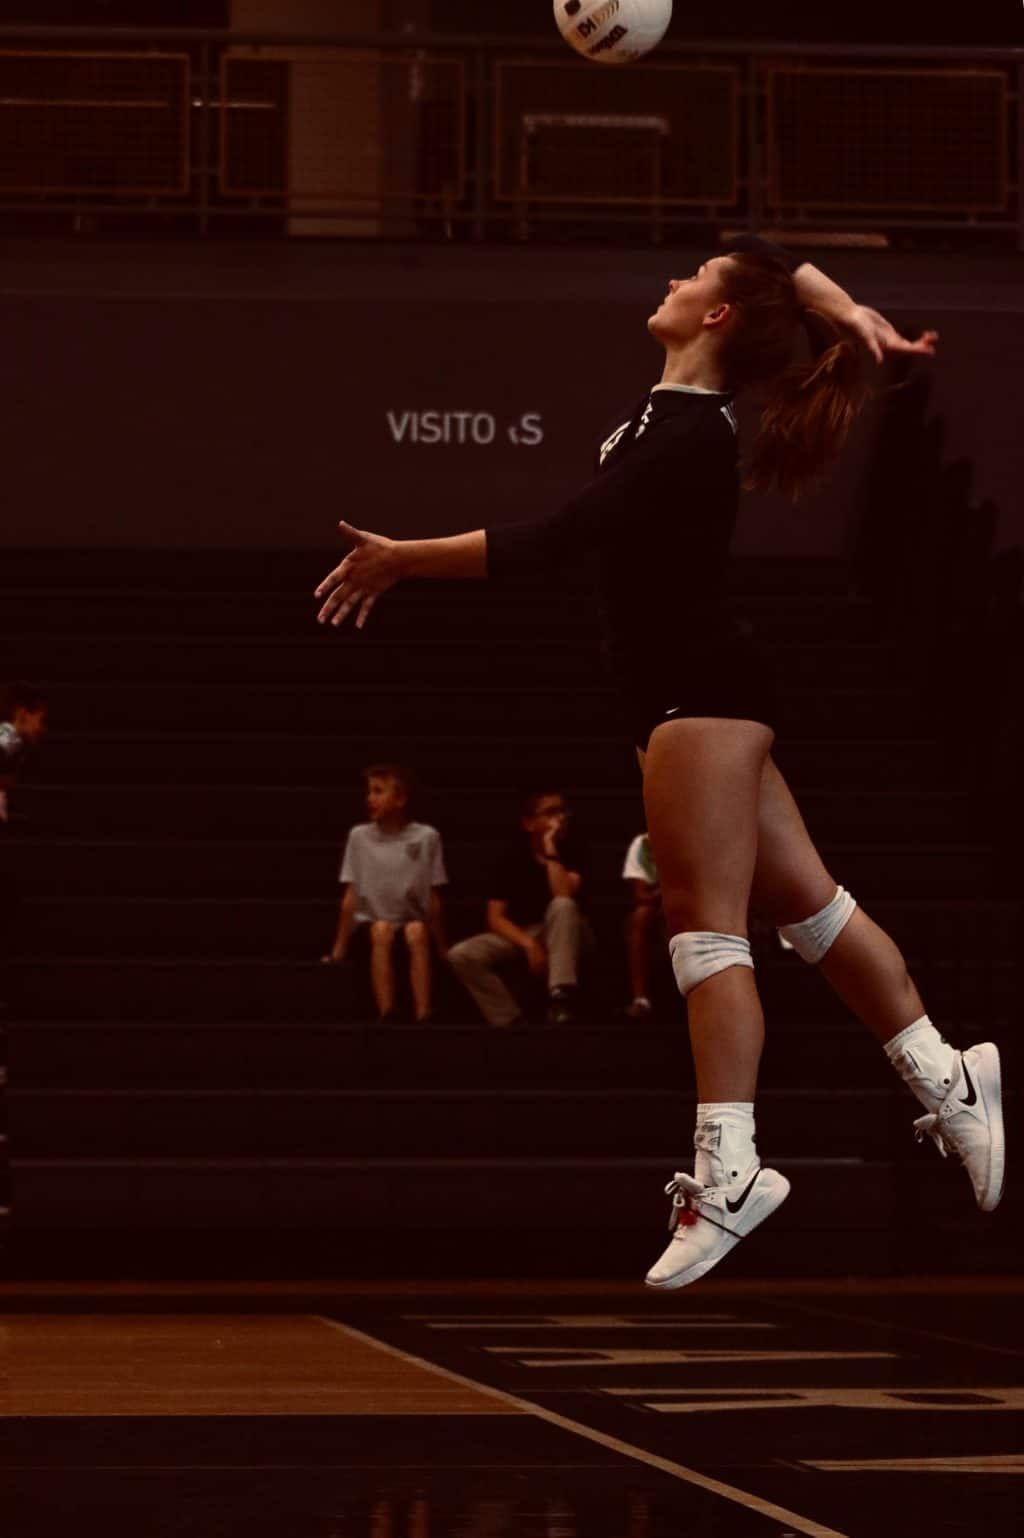 Female volleyball player spiking a ball